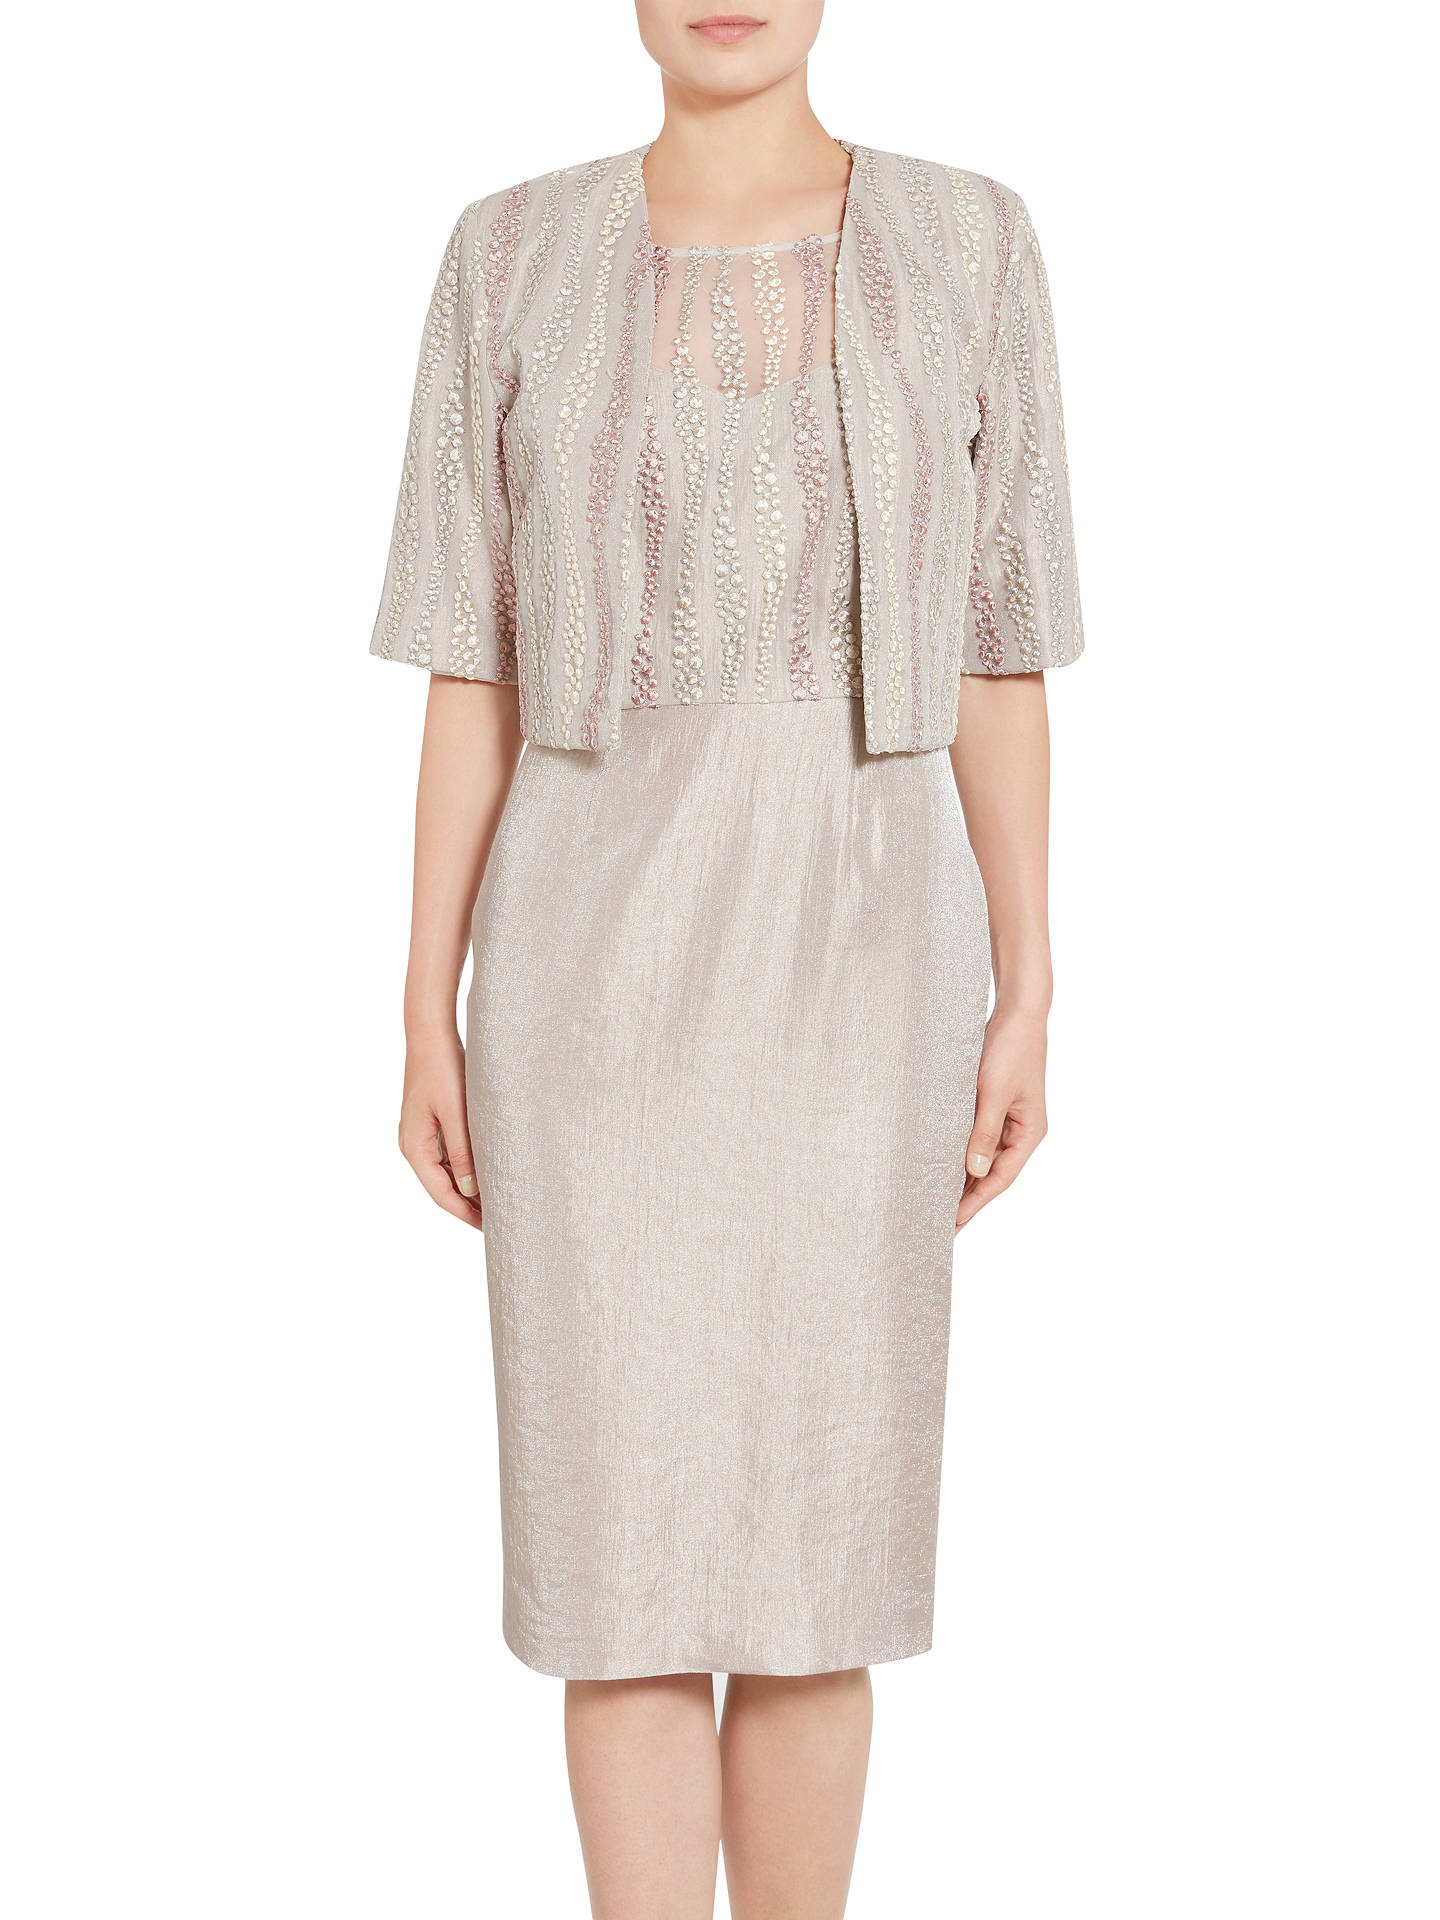 dbe2aeb1f54a0 Gina Bacconi Embroidered Mesh Dress And Jacket, Oyster at John Lewis ...